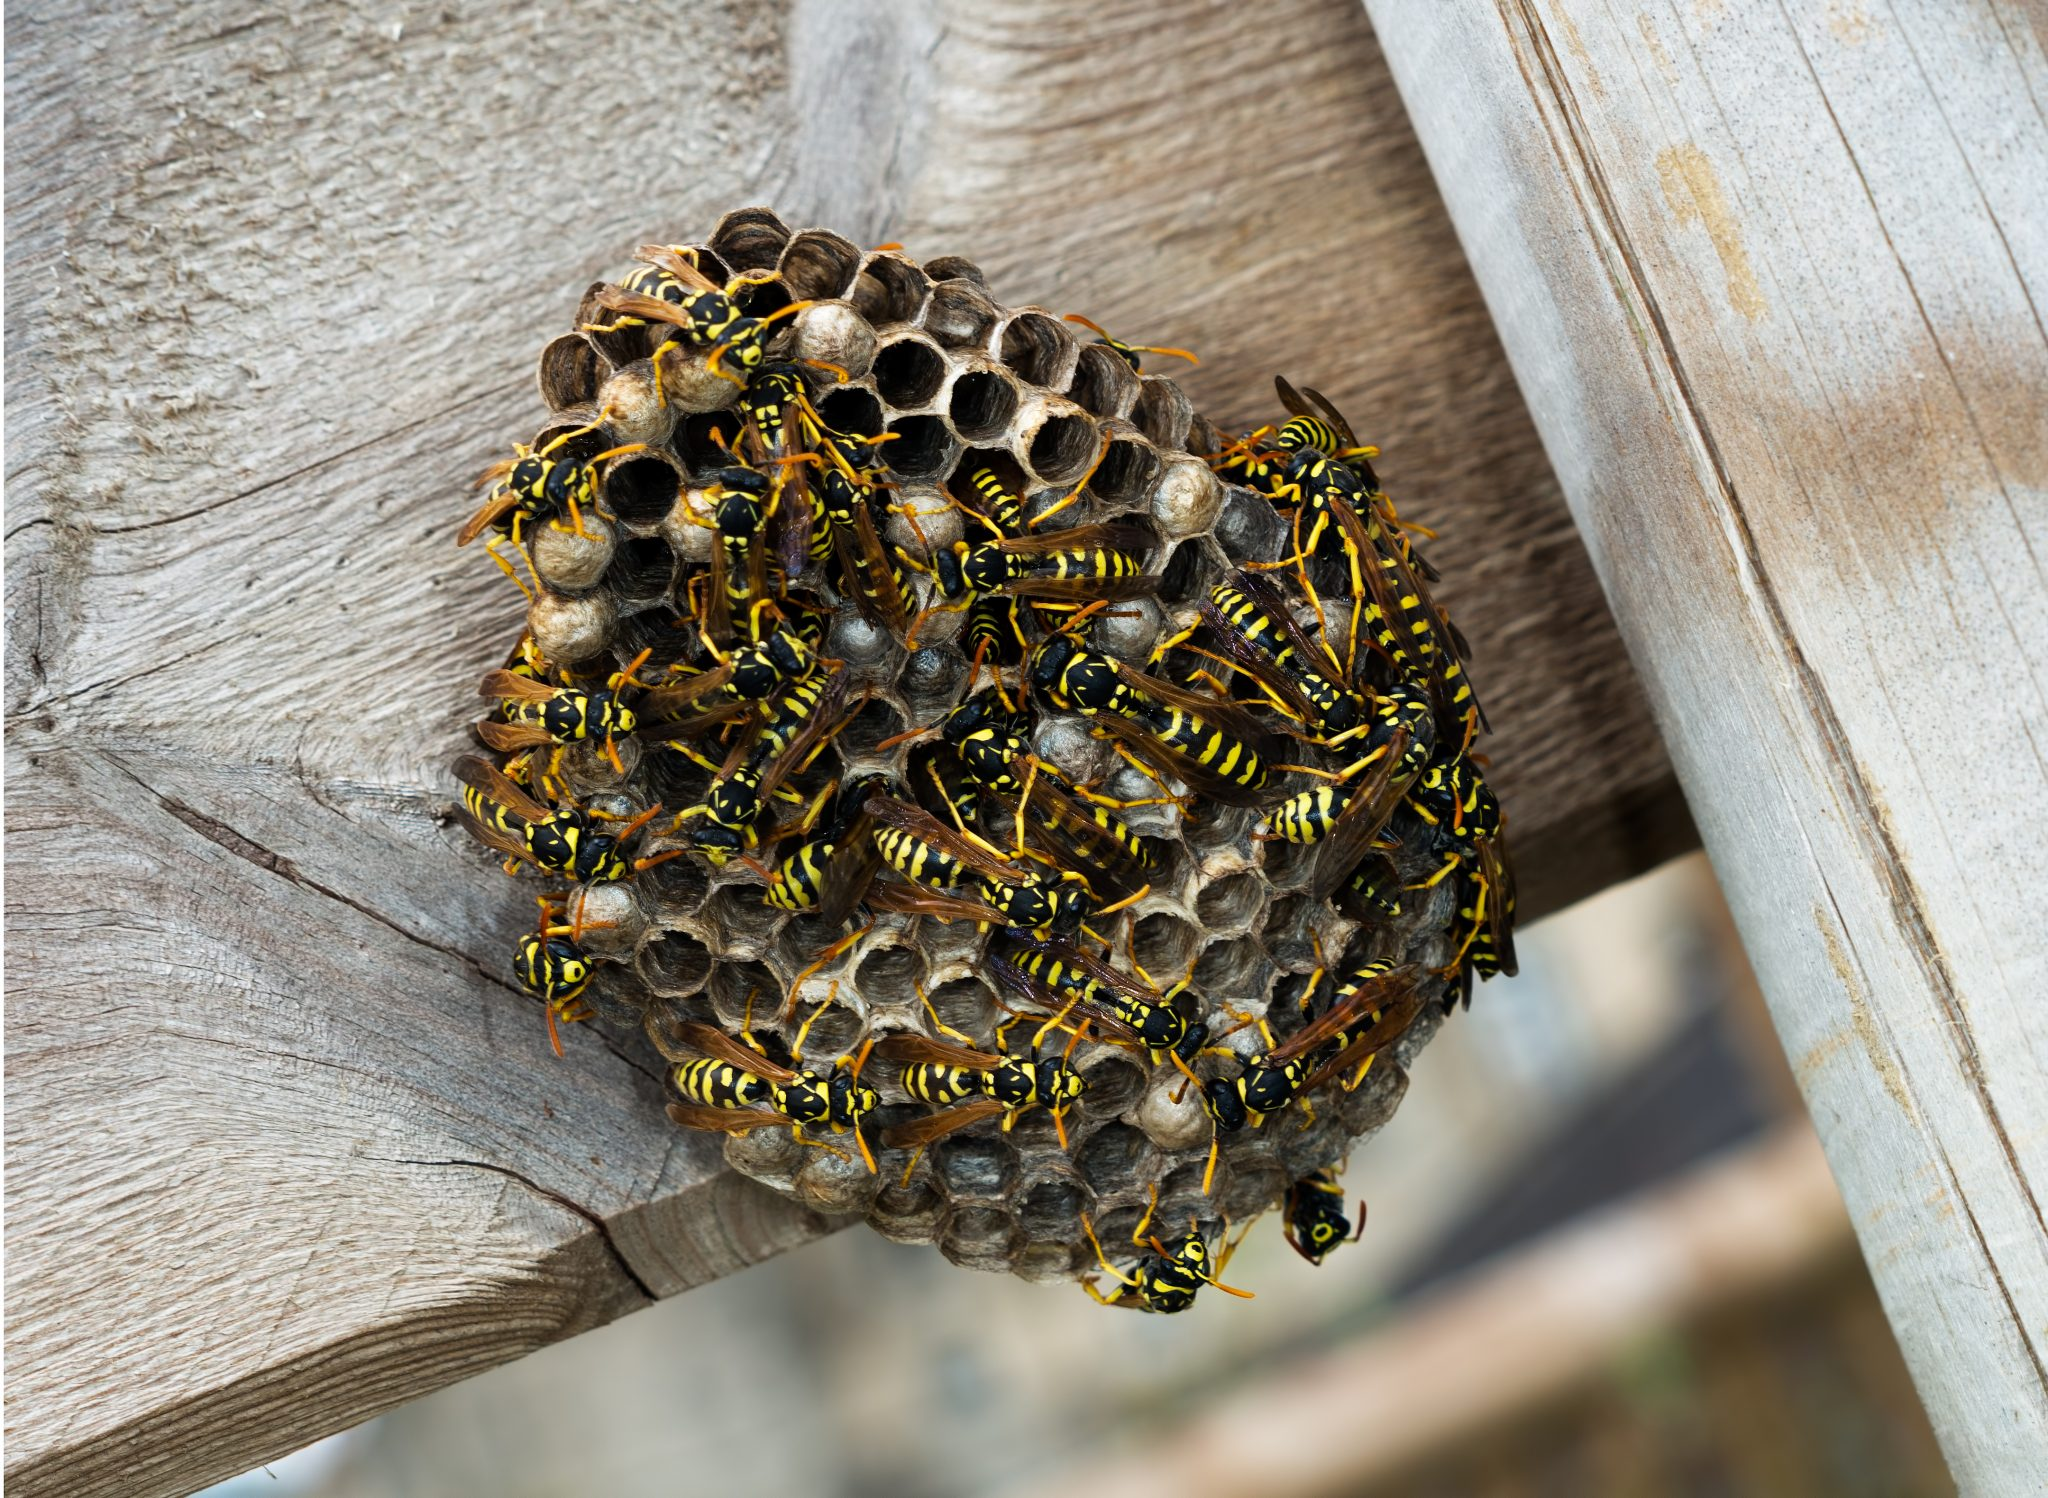 Wasps  Watch Out This Summer